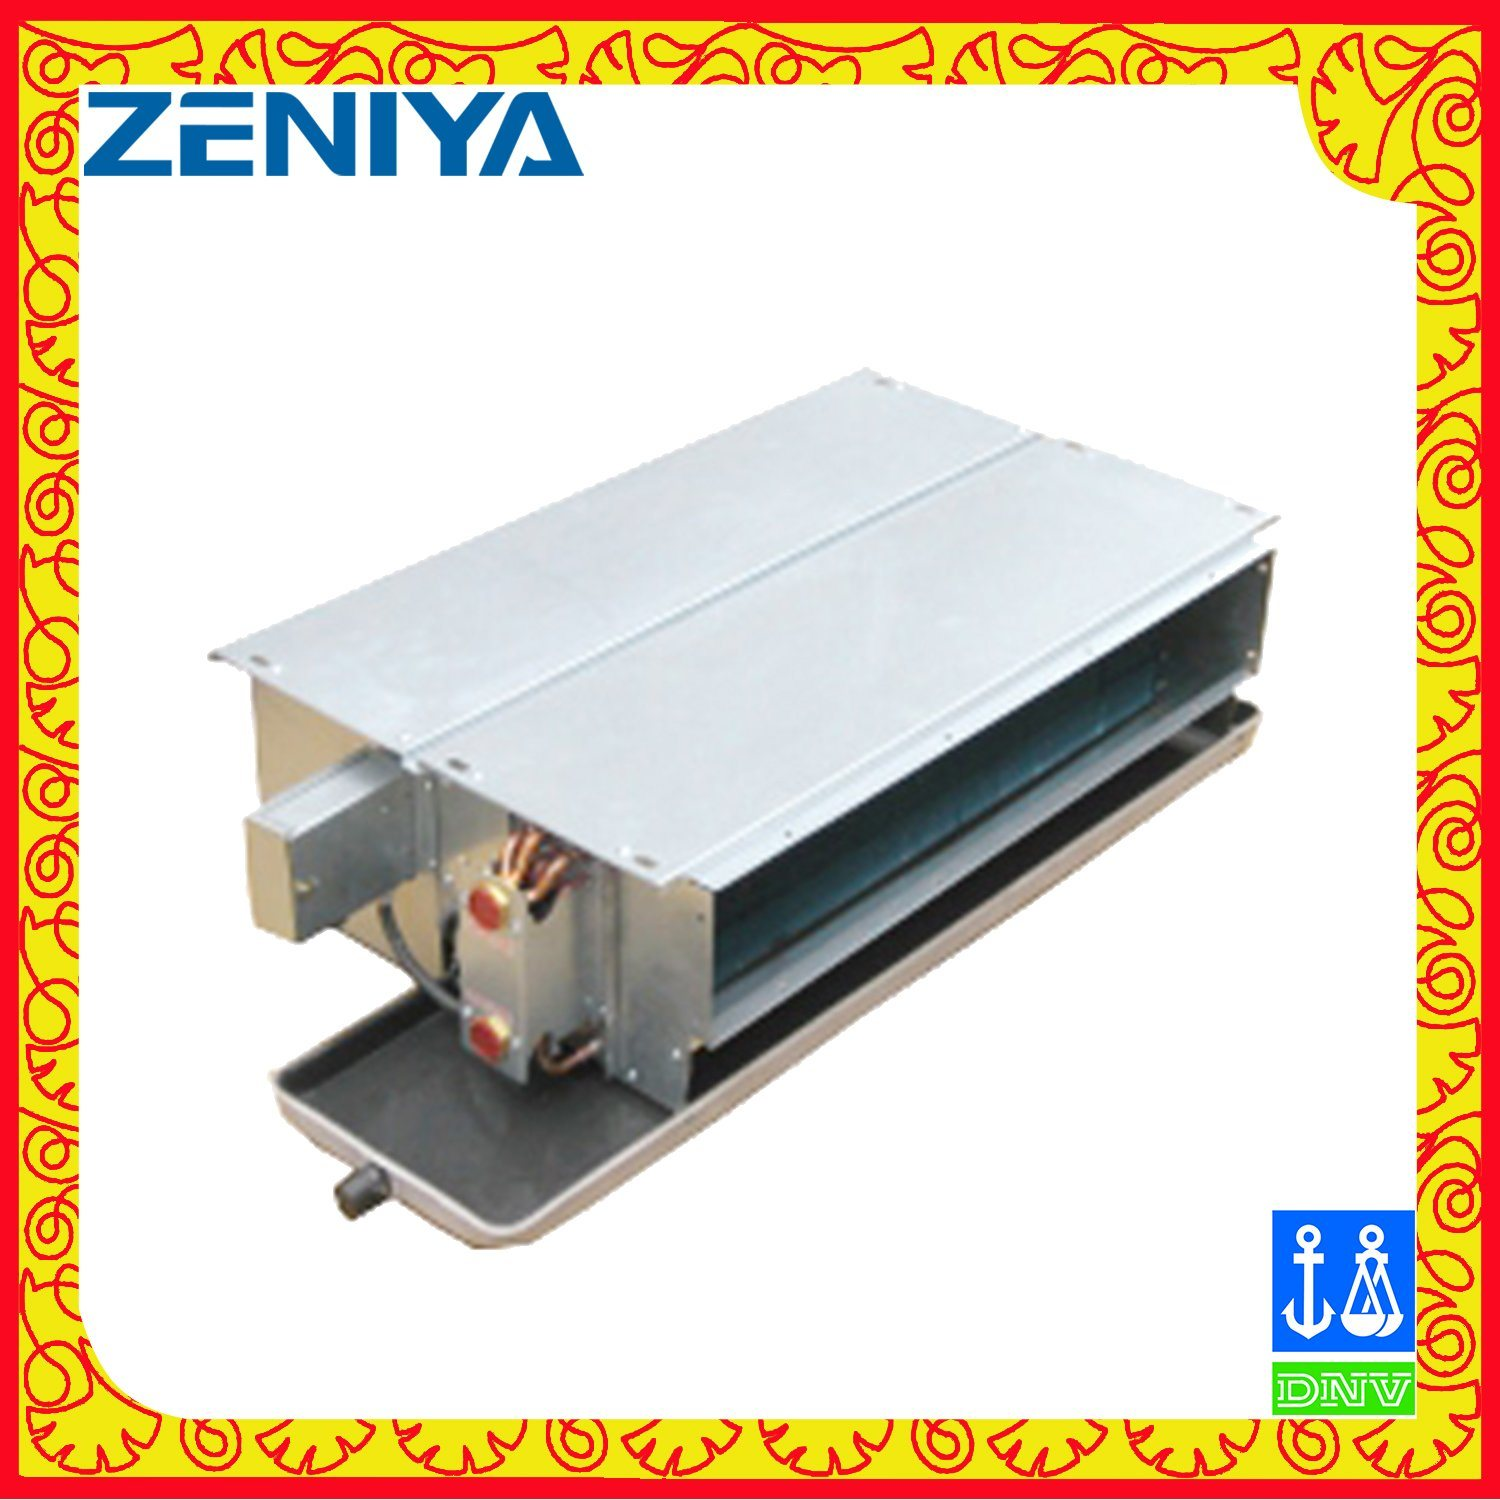 Horizontal Ceiling Concealed Duct Fan Coil Unit for HVAC